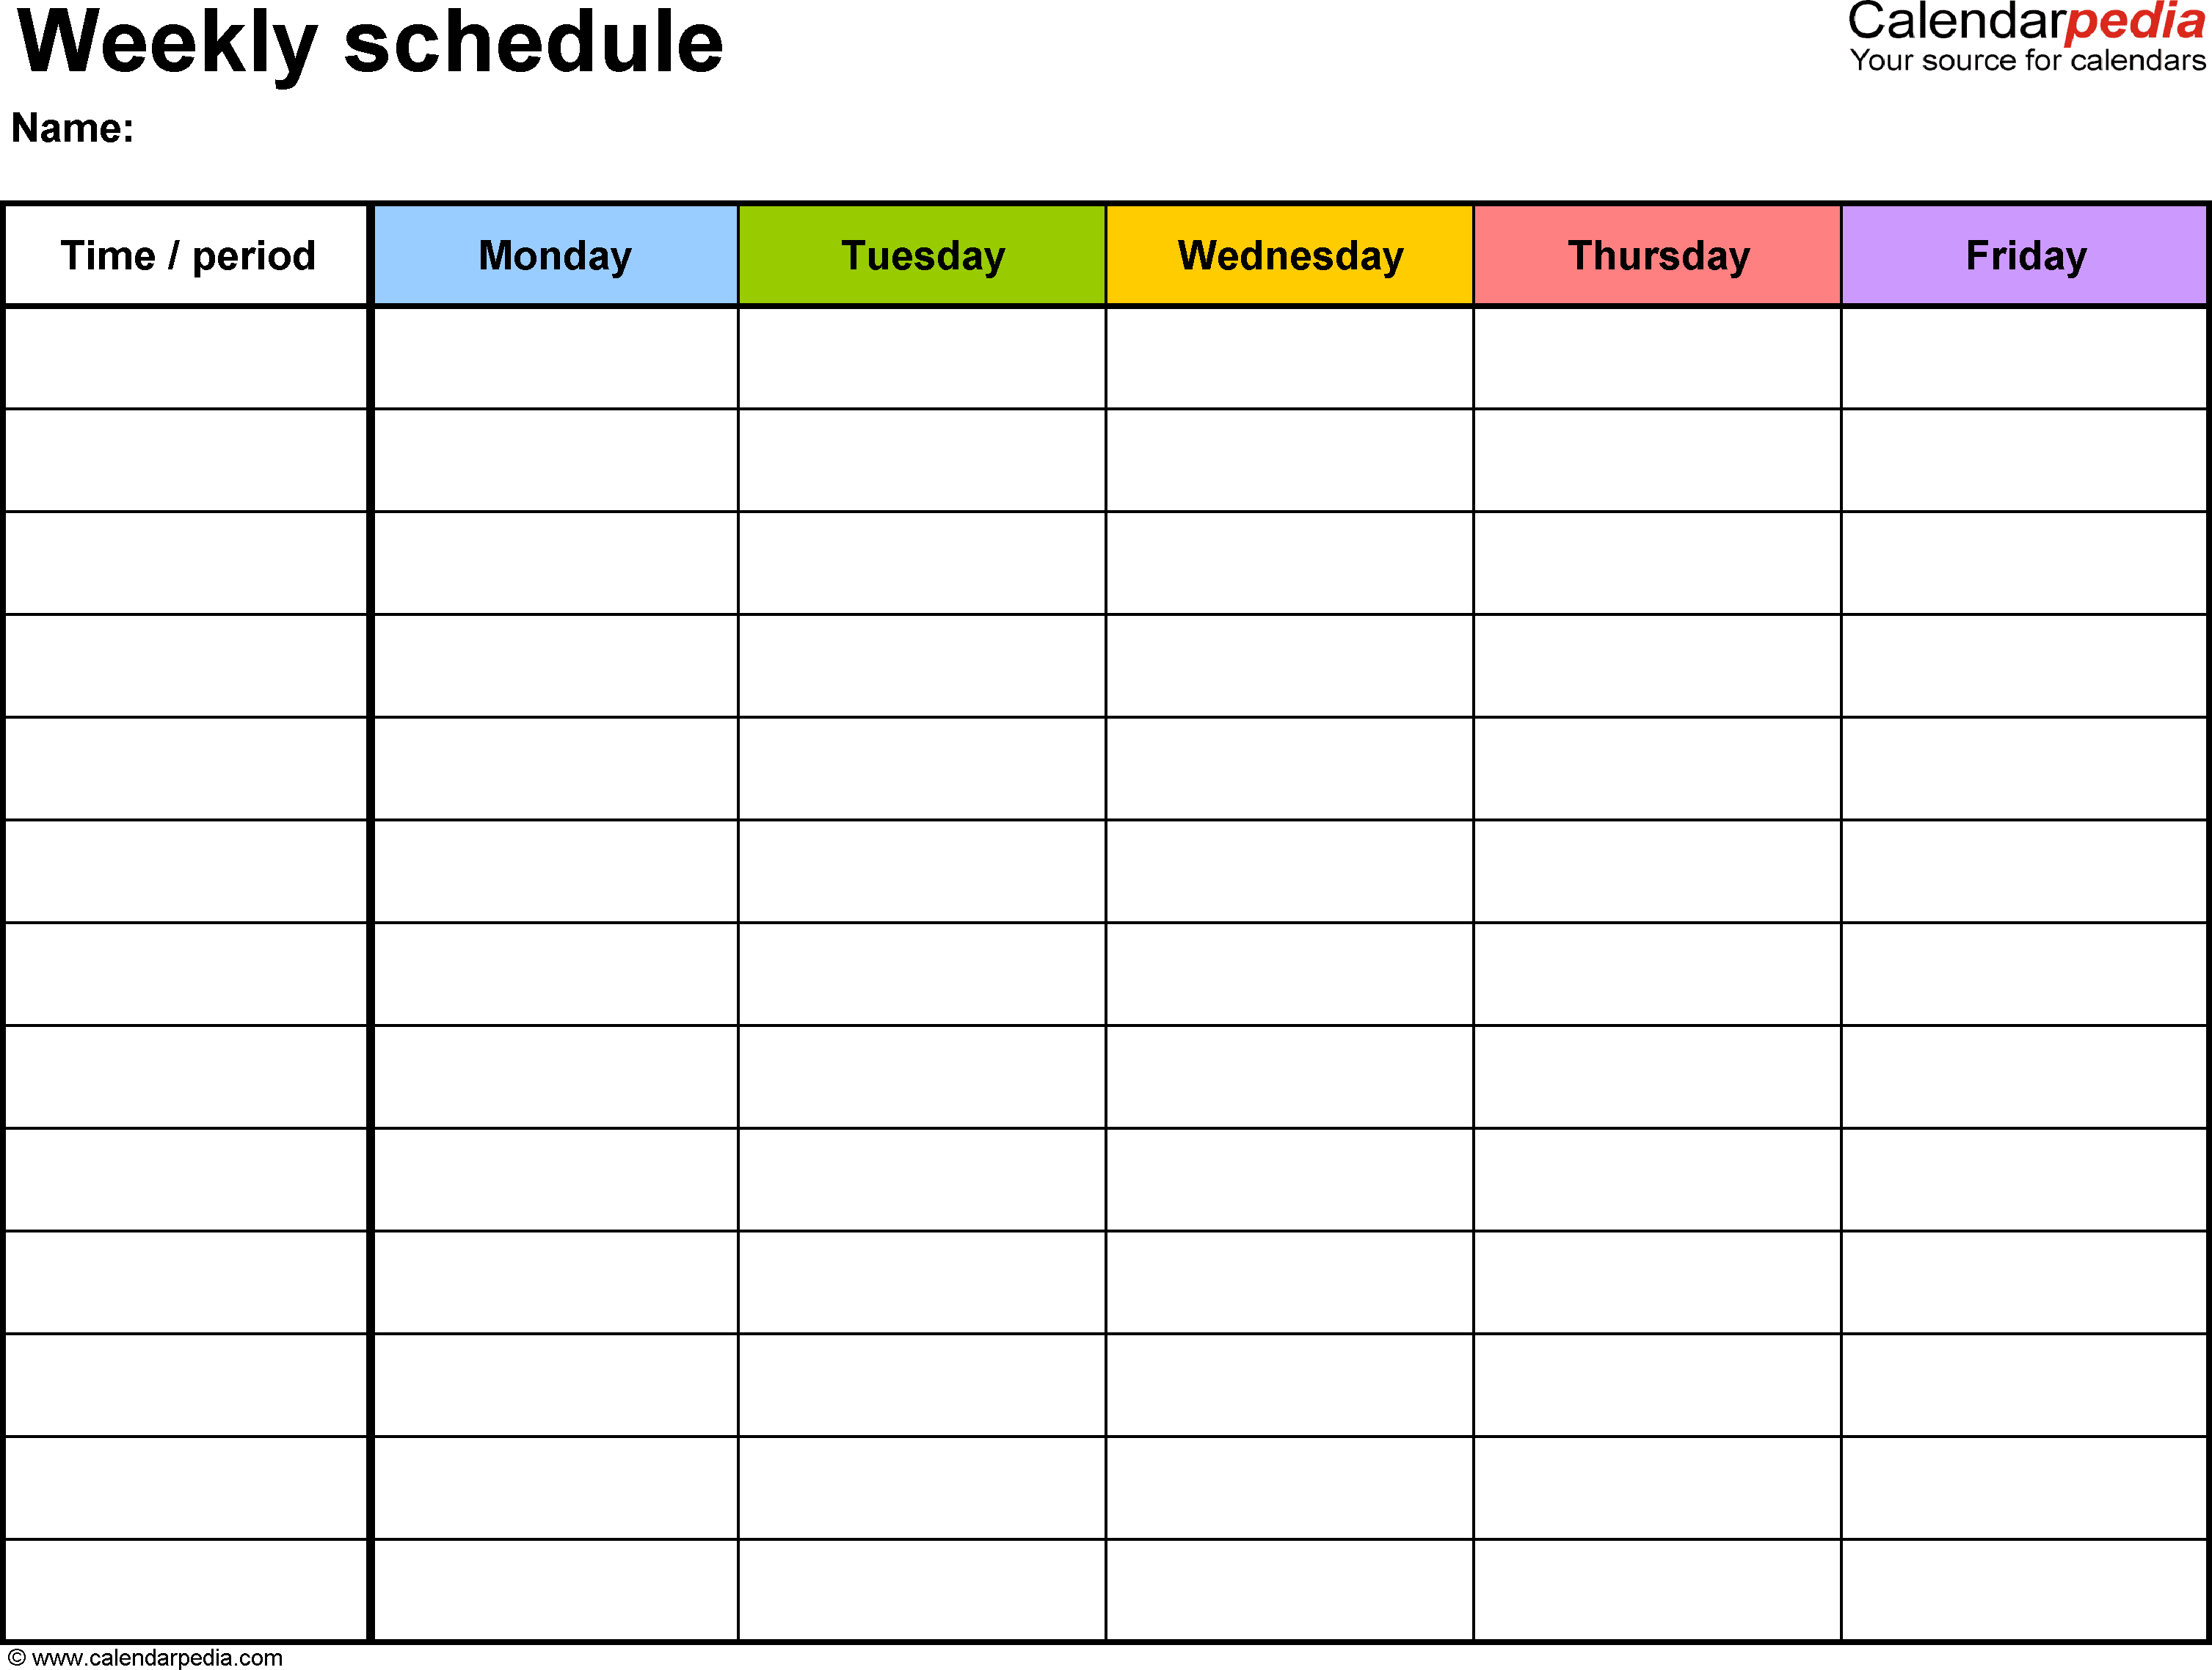 Timetable Spreadsheet For Free Weekly Schedule Templates For Excel  18 Templates